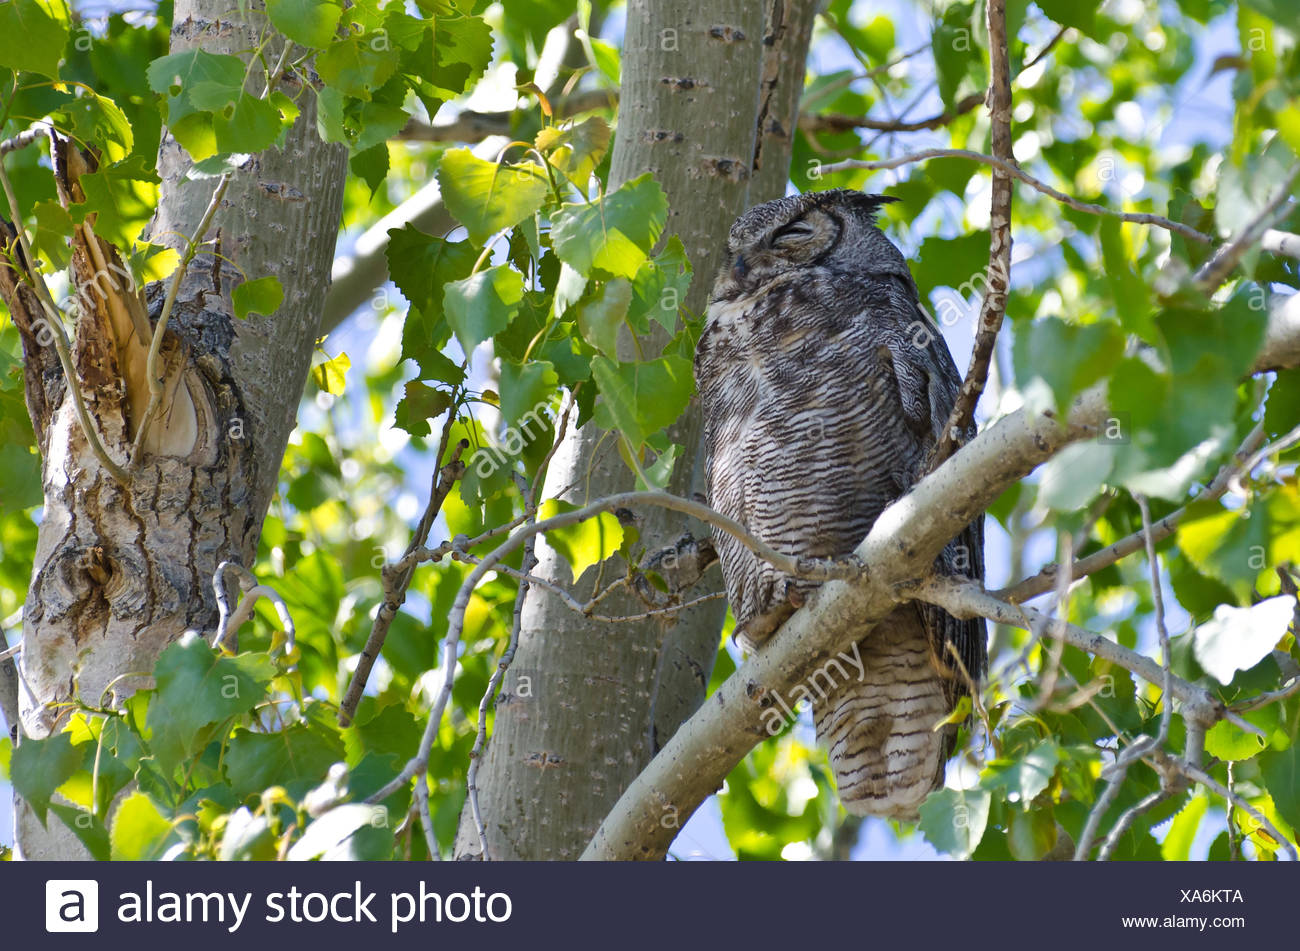 Great Horned Owl Perched on a Branch in a Tree Stock Photo